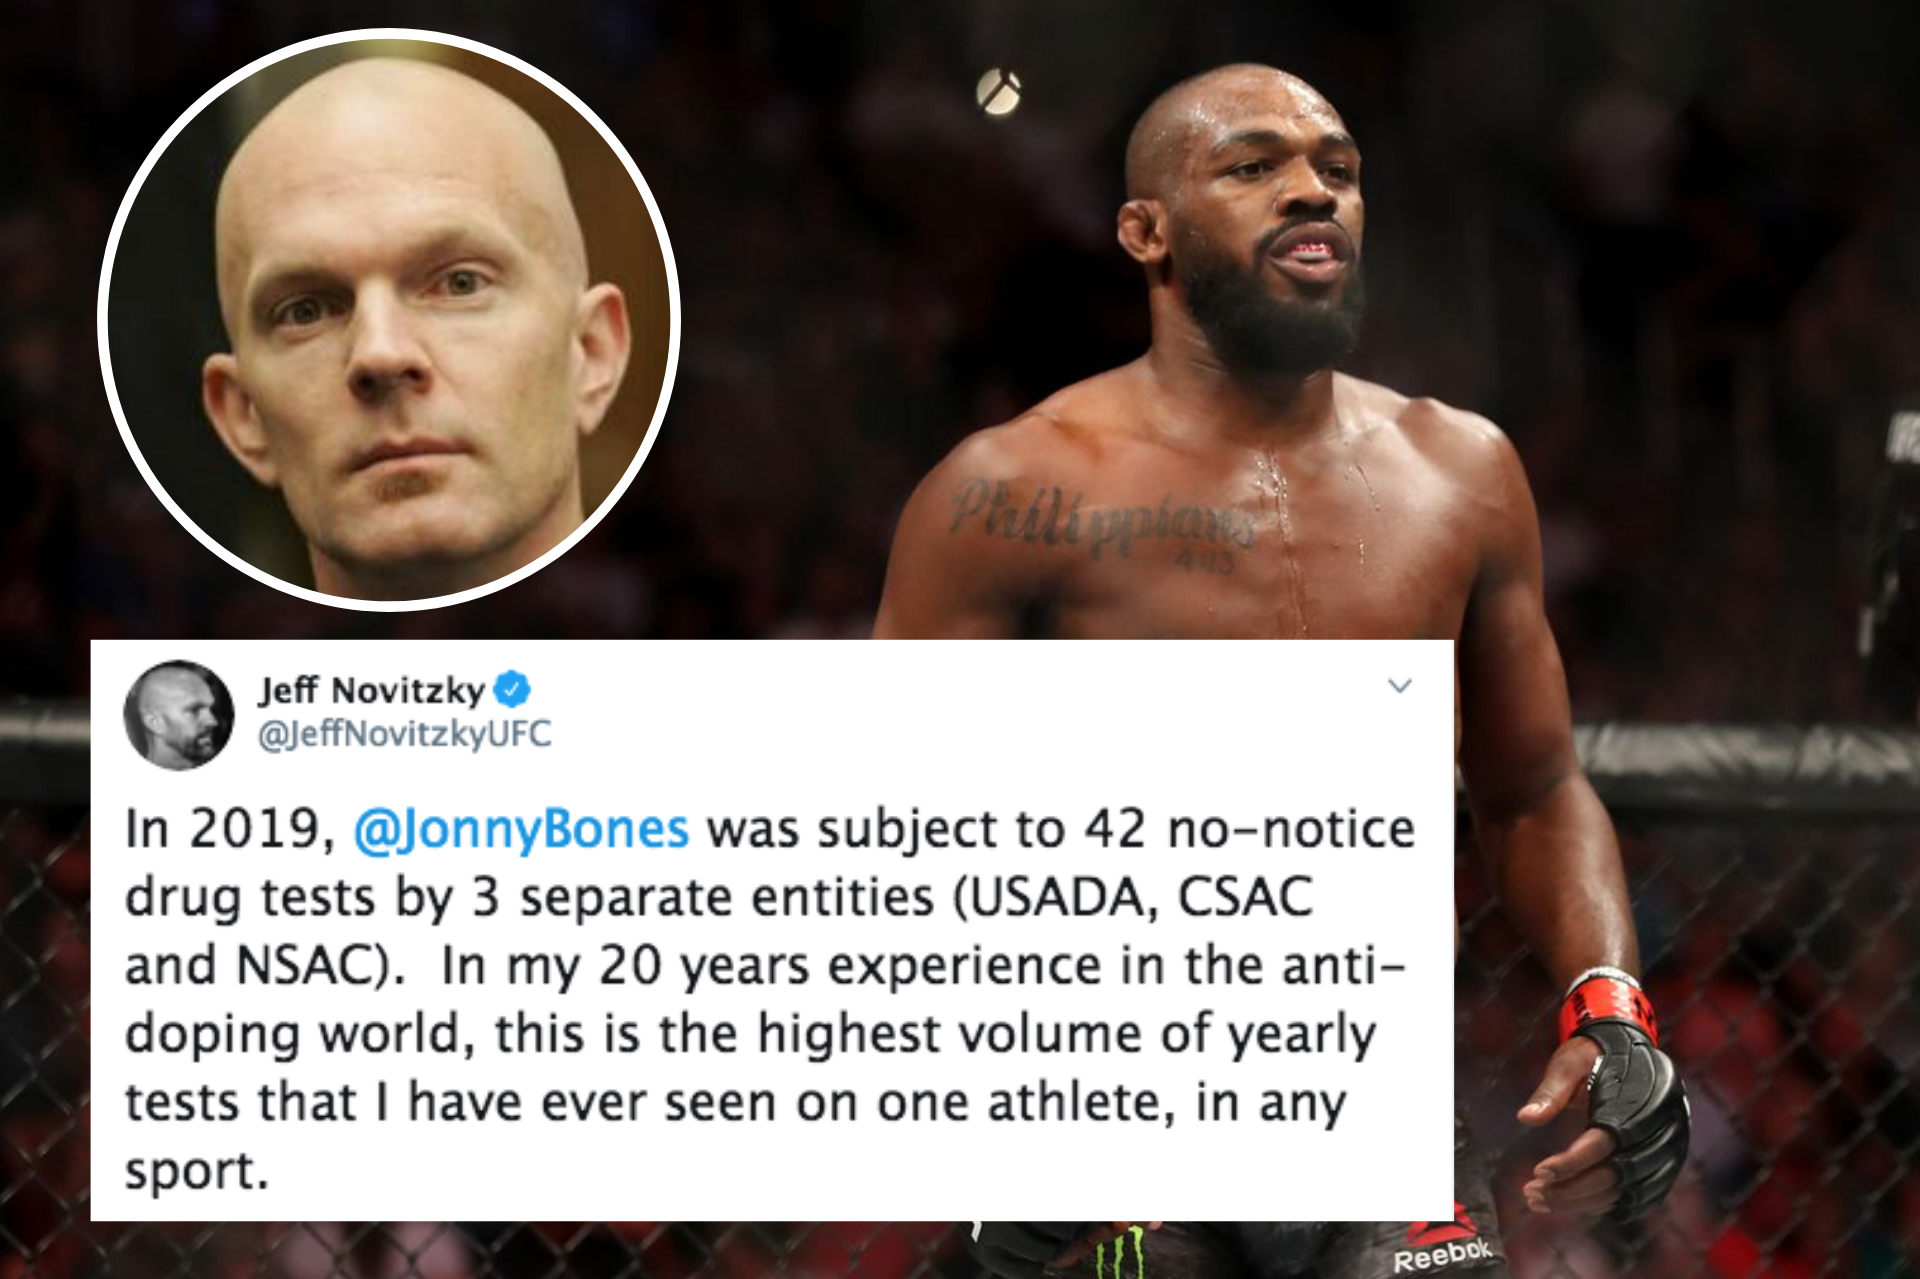 UFC News: Jeff Novitzky reveals that Jon Jones was tested a whopping 42 times in 2019 - the most for any athlete ever! - Jon Jones